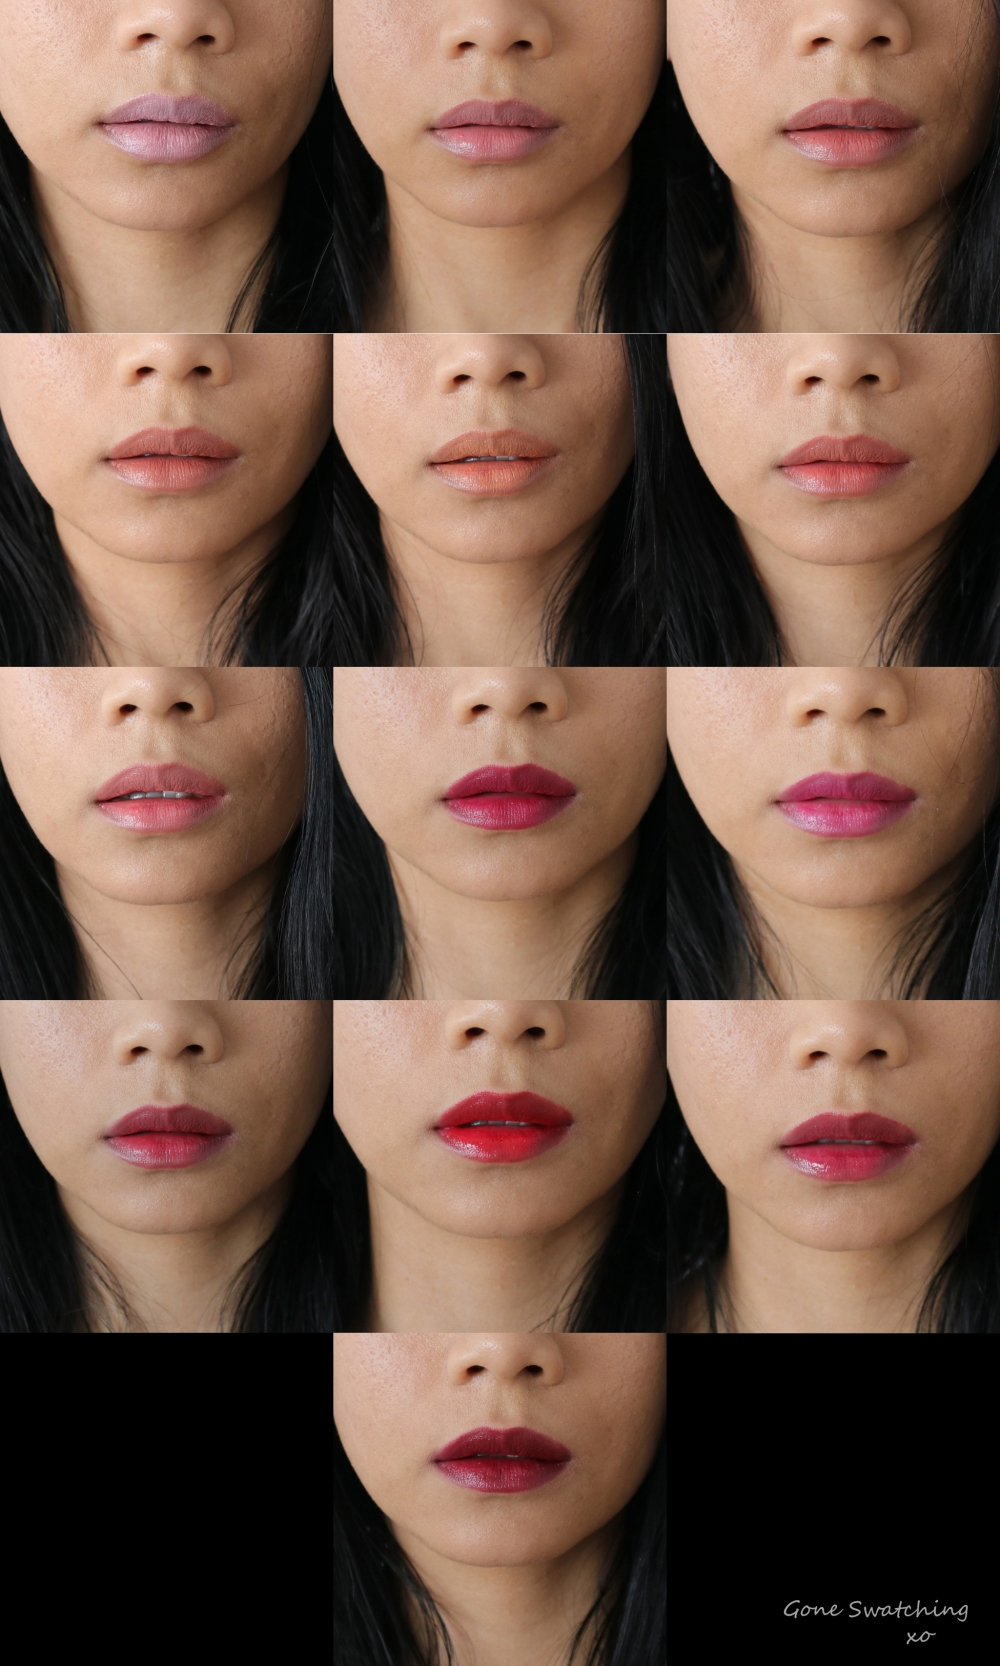 Ilia Beauty Tinted Lip conditioner. Shell Shock, Pink Moon, Jump, Bang Bang, Crimson Clover, Arabian Nights & Lust for Life. Gone Swatching xo